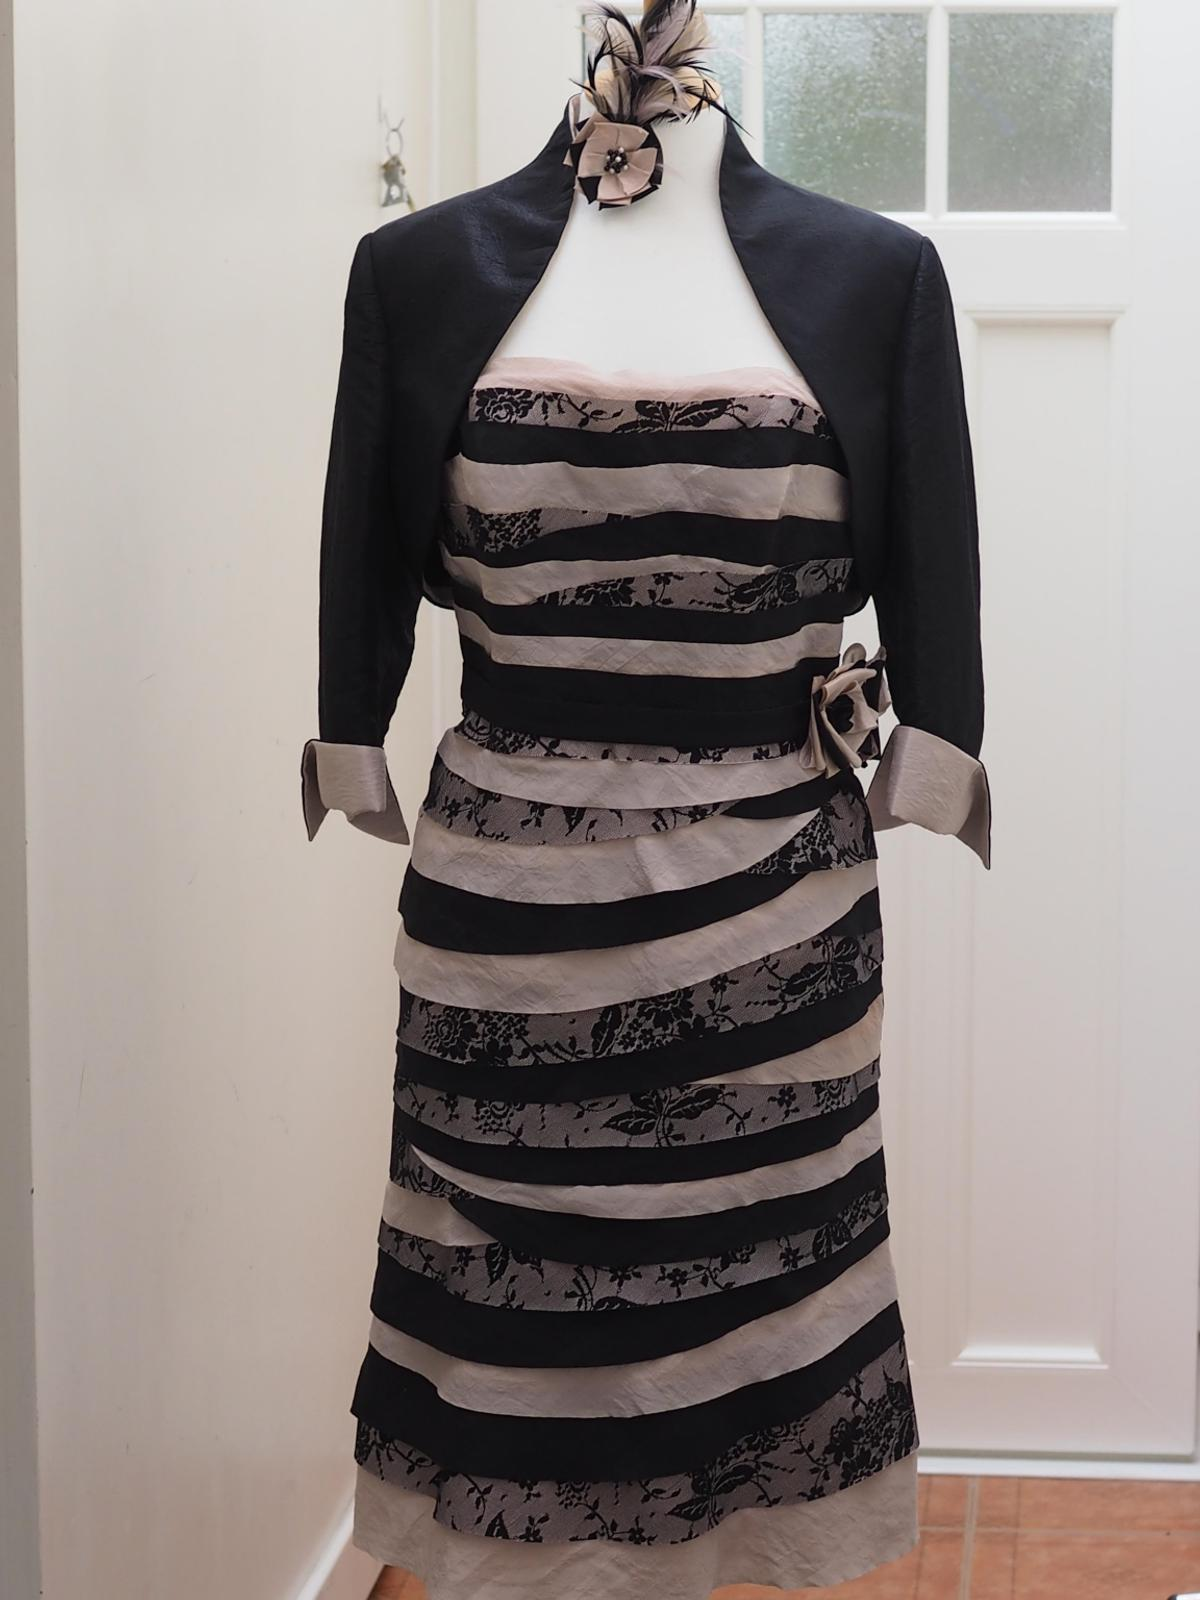 Size 12, John Charles dress and jacket. Bought as a mother of the bride outfit but suitable for any special occasion. Fully lined. Dress material bias cut for flattering fit. Fascinator hand made to match. Cost £425, worn once. Comes complete with cover. Selling for £100 ono. Facility to try on by arrangement. We are a smoke and pet free home. Buyer collects from MK41 Bedford